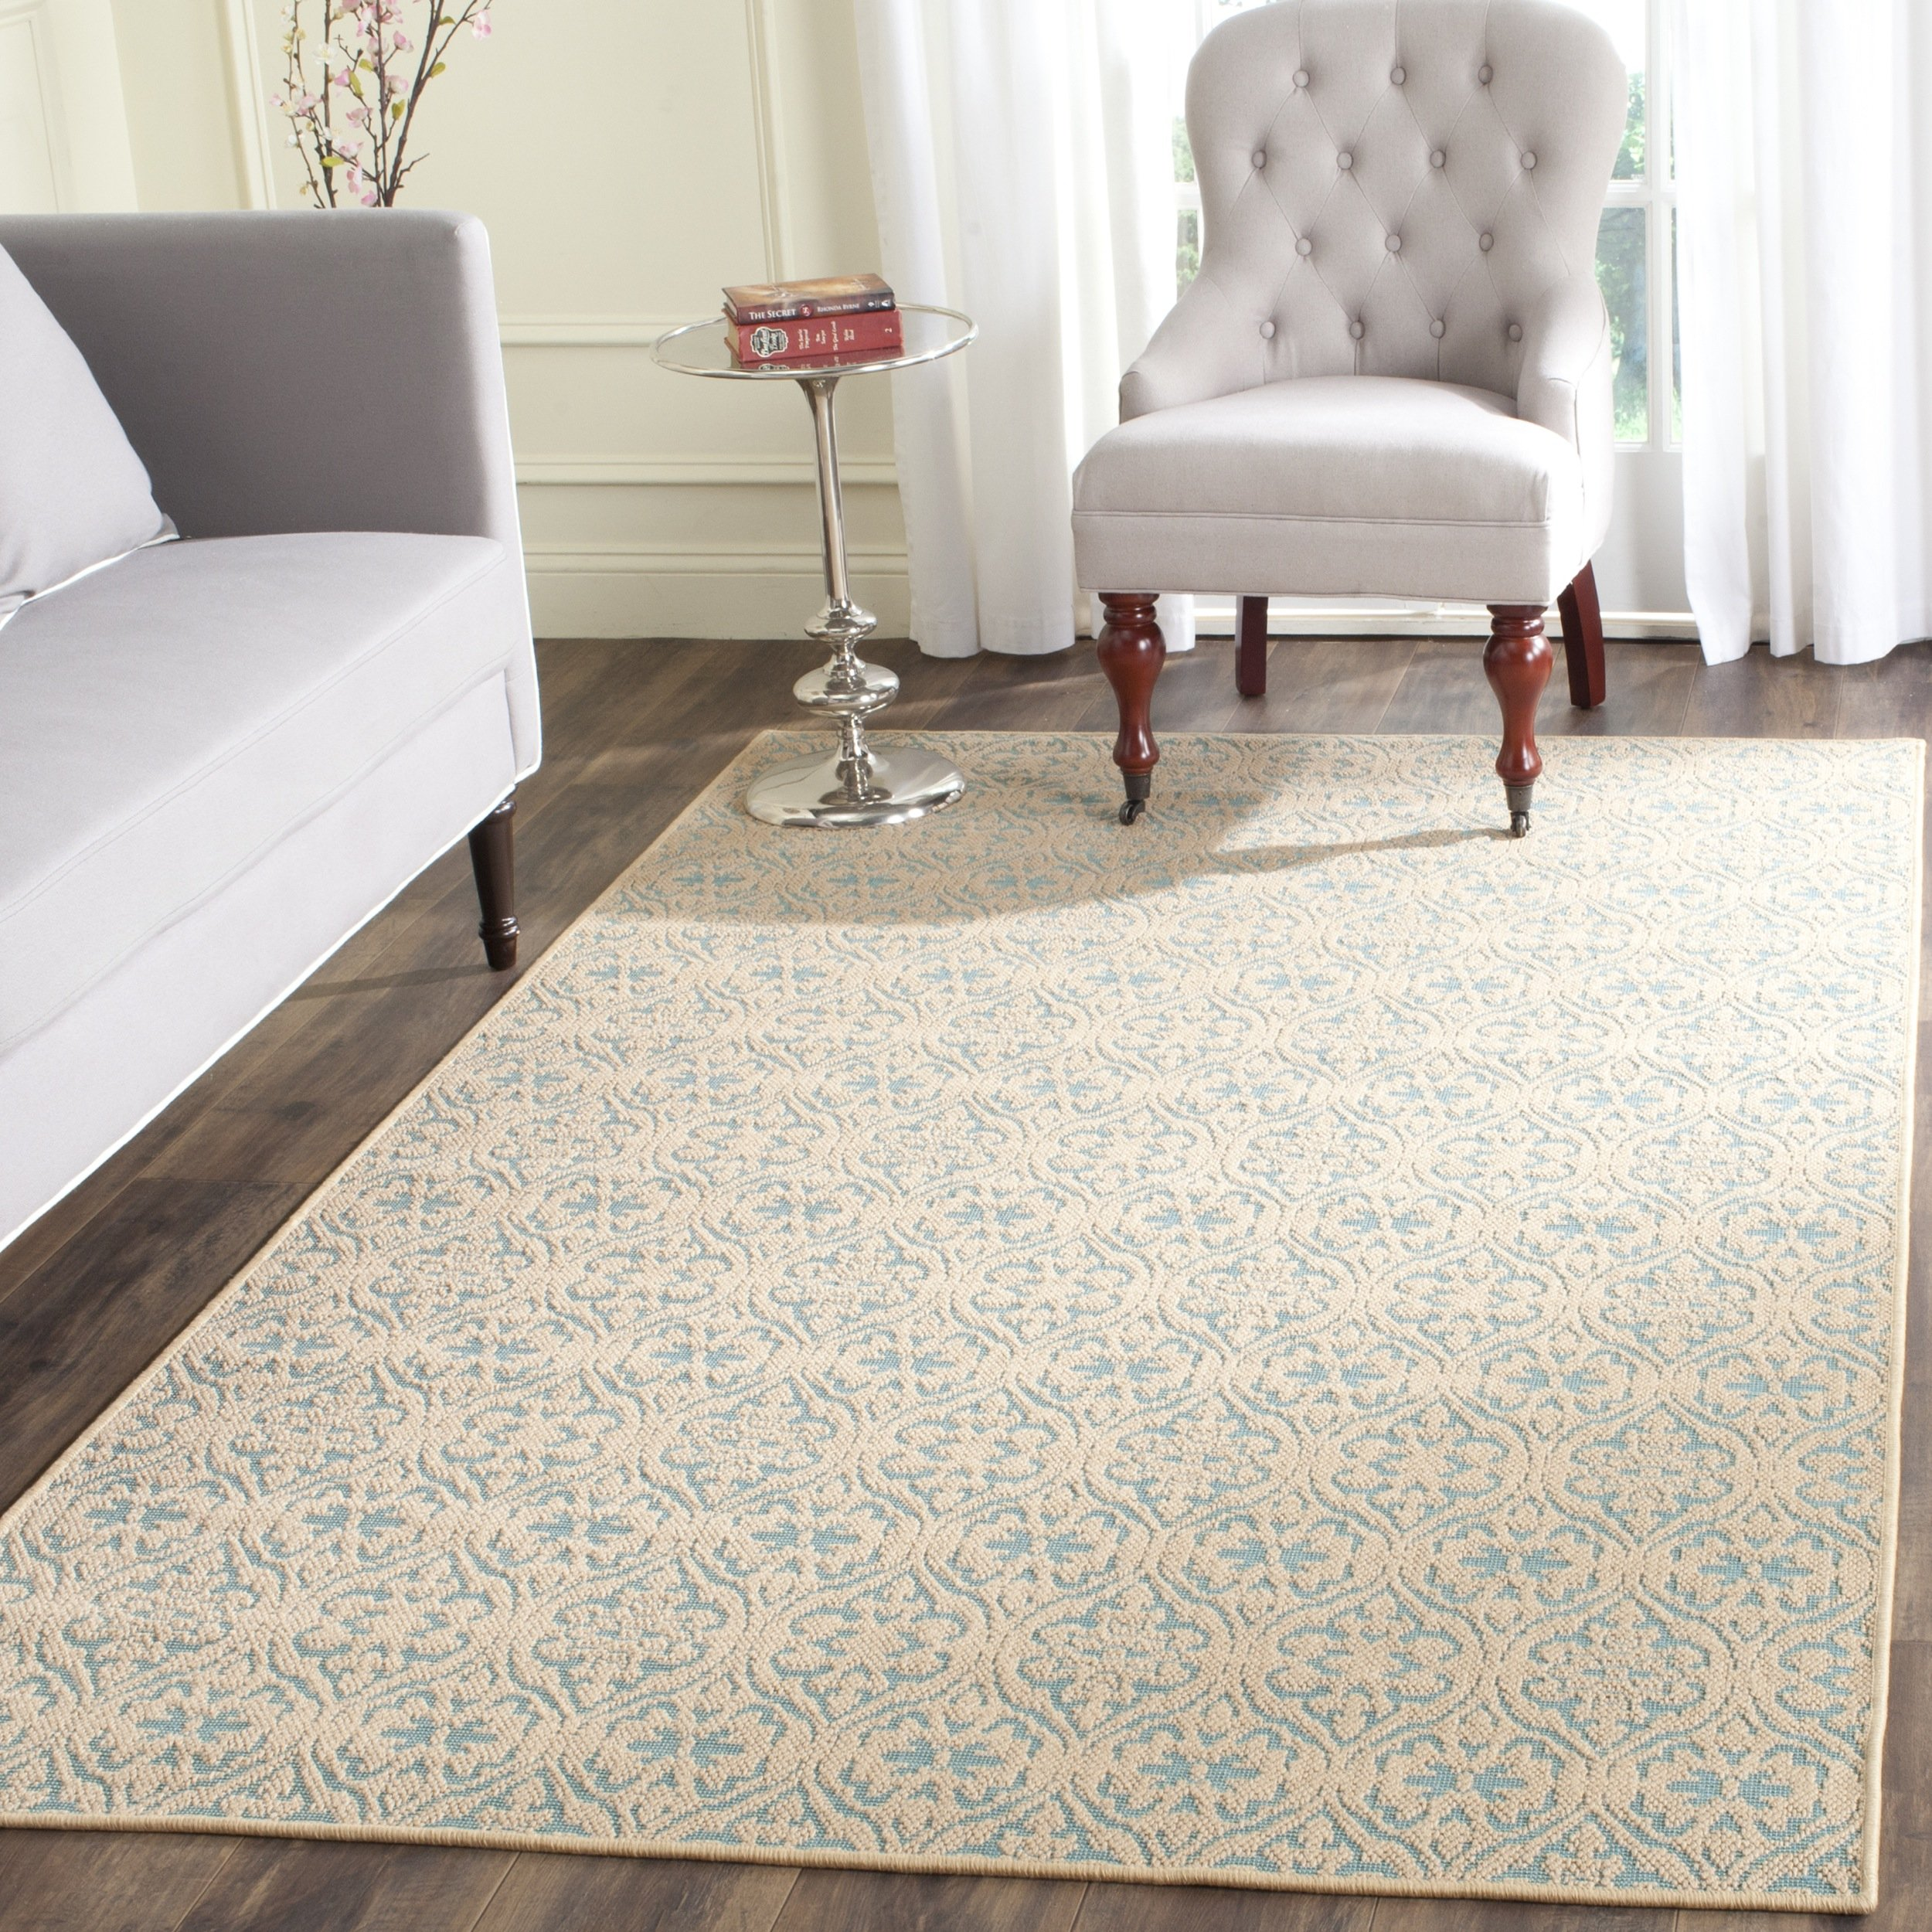 Safavieh Palm Beach Collection PAB511A Hand Woven Natural and Turquoise Jute Area Rug (8' x 11')